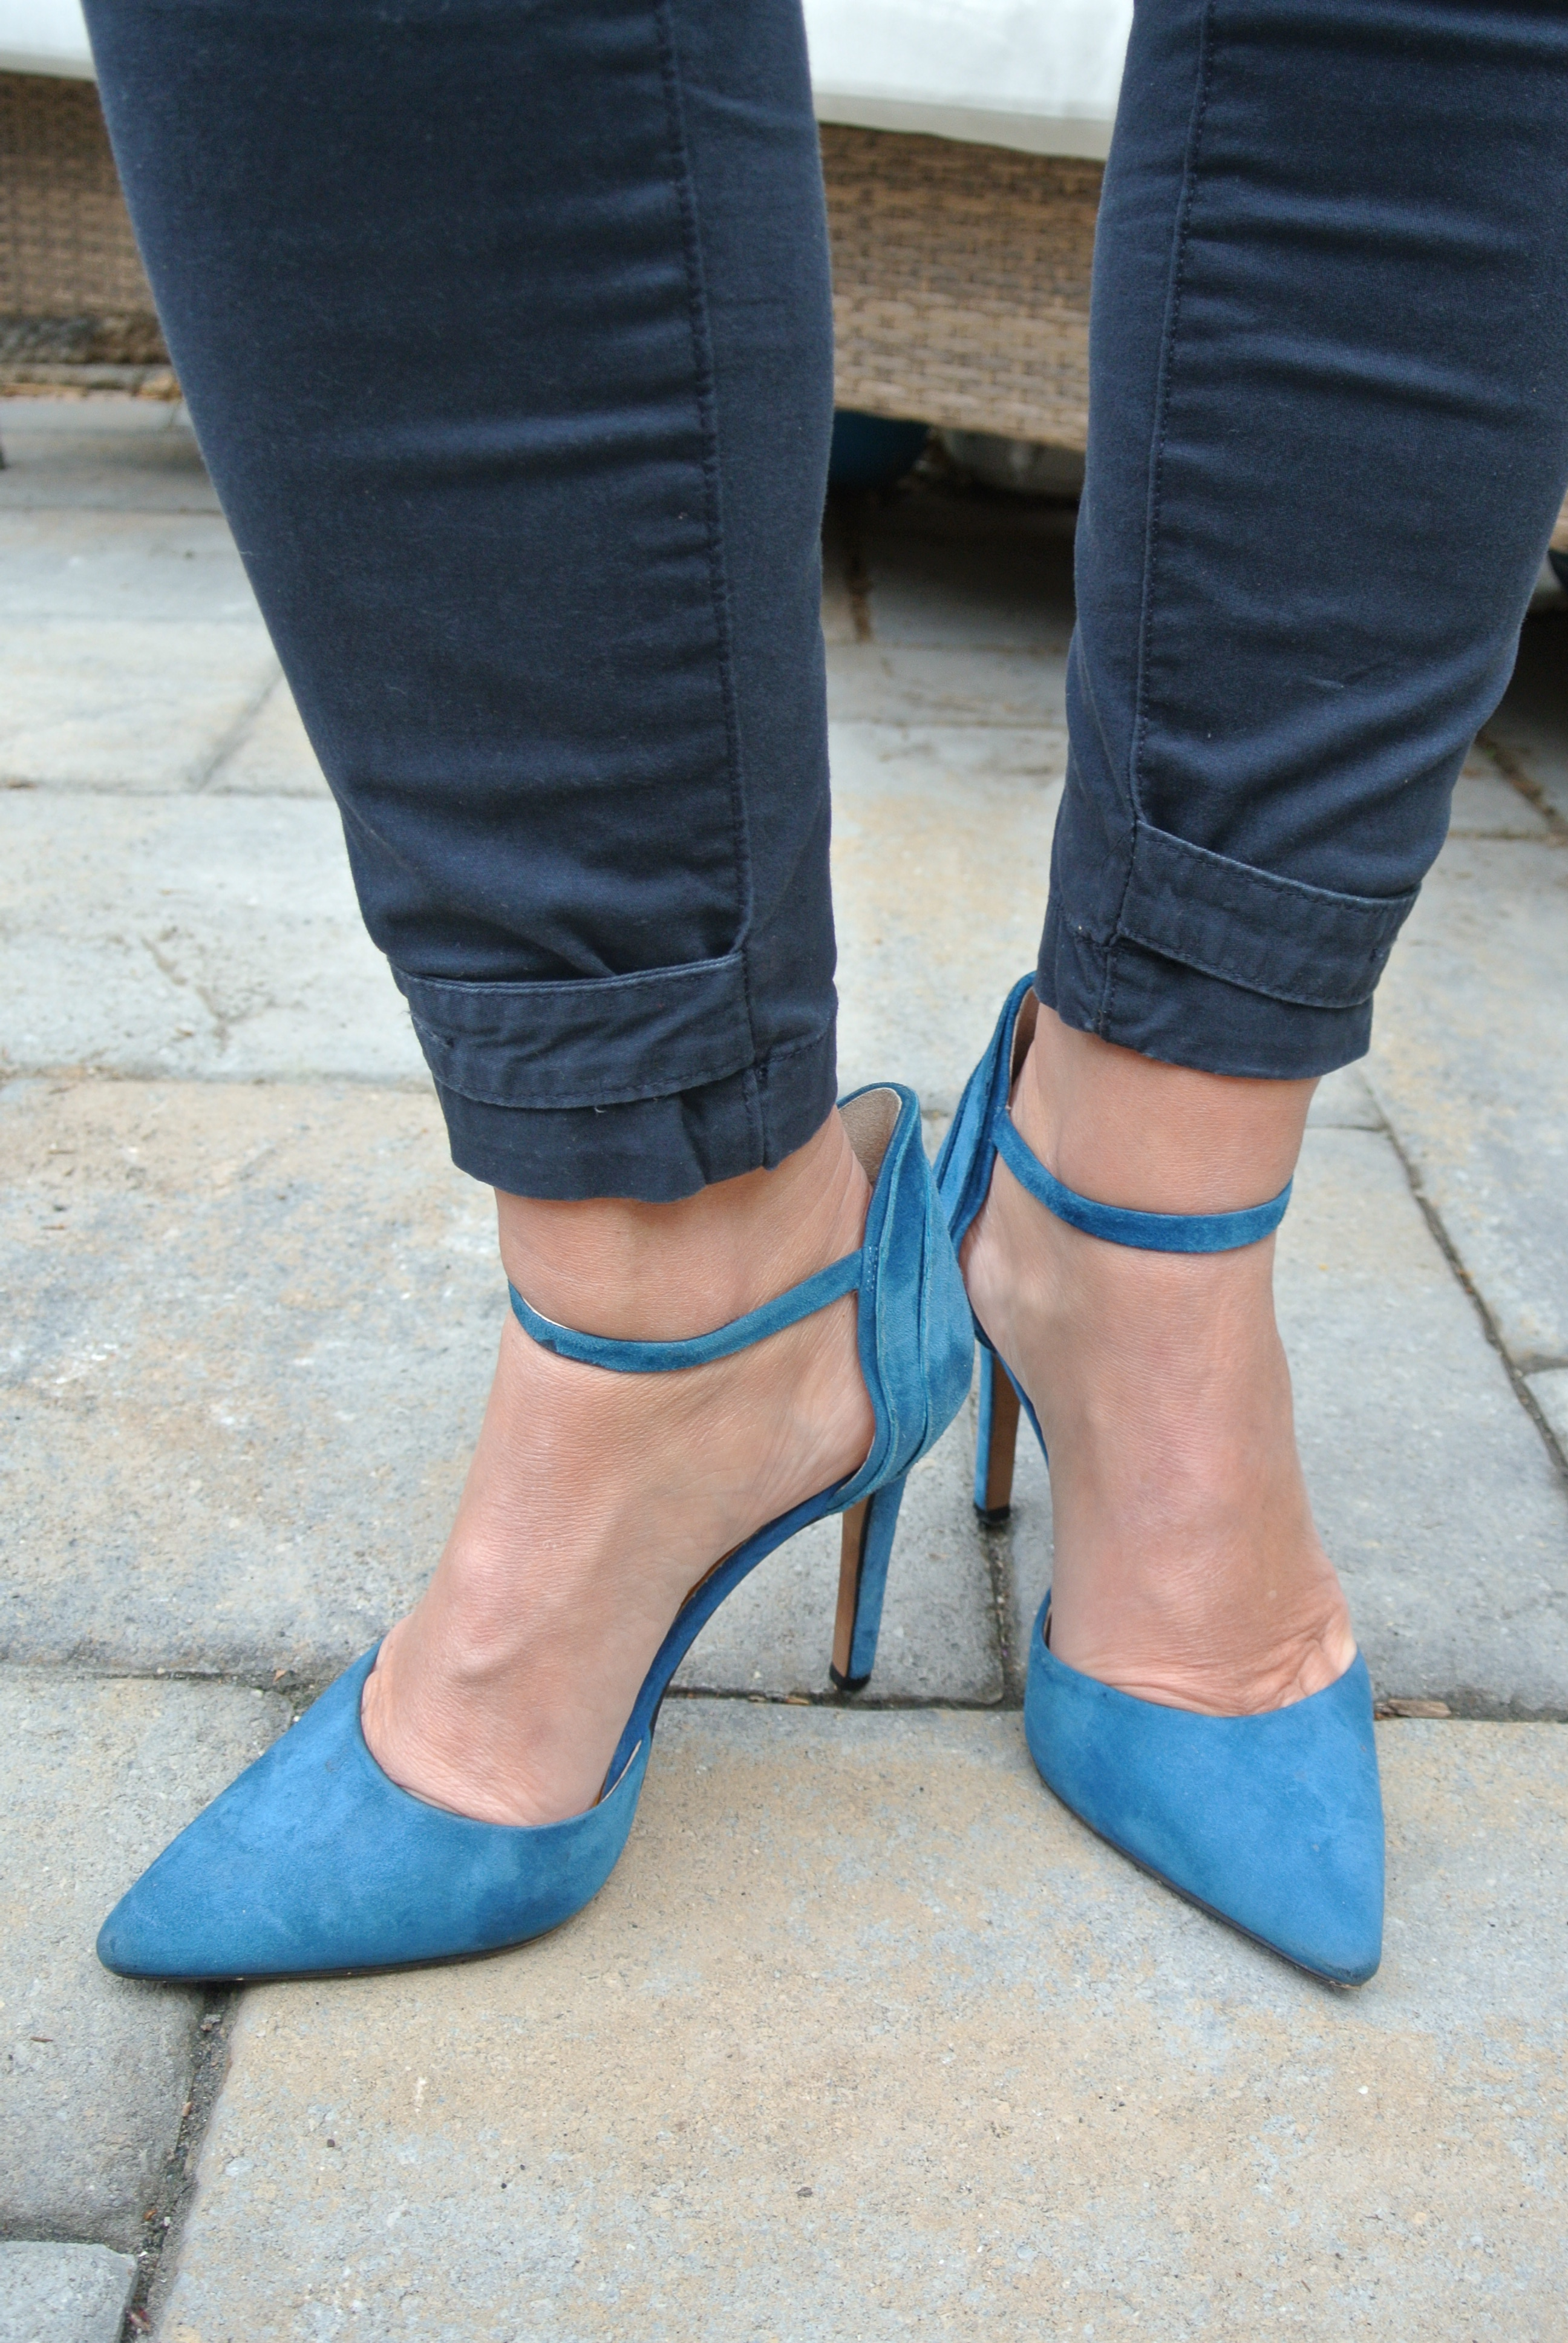 shoe fashion inspiration shoe blog women empowerment